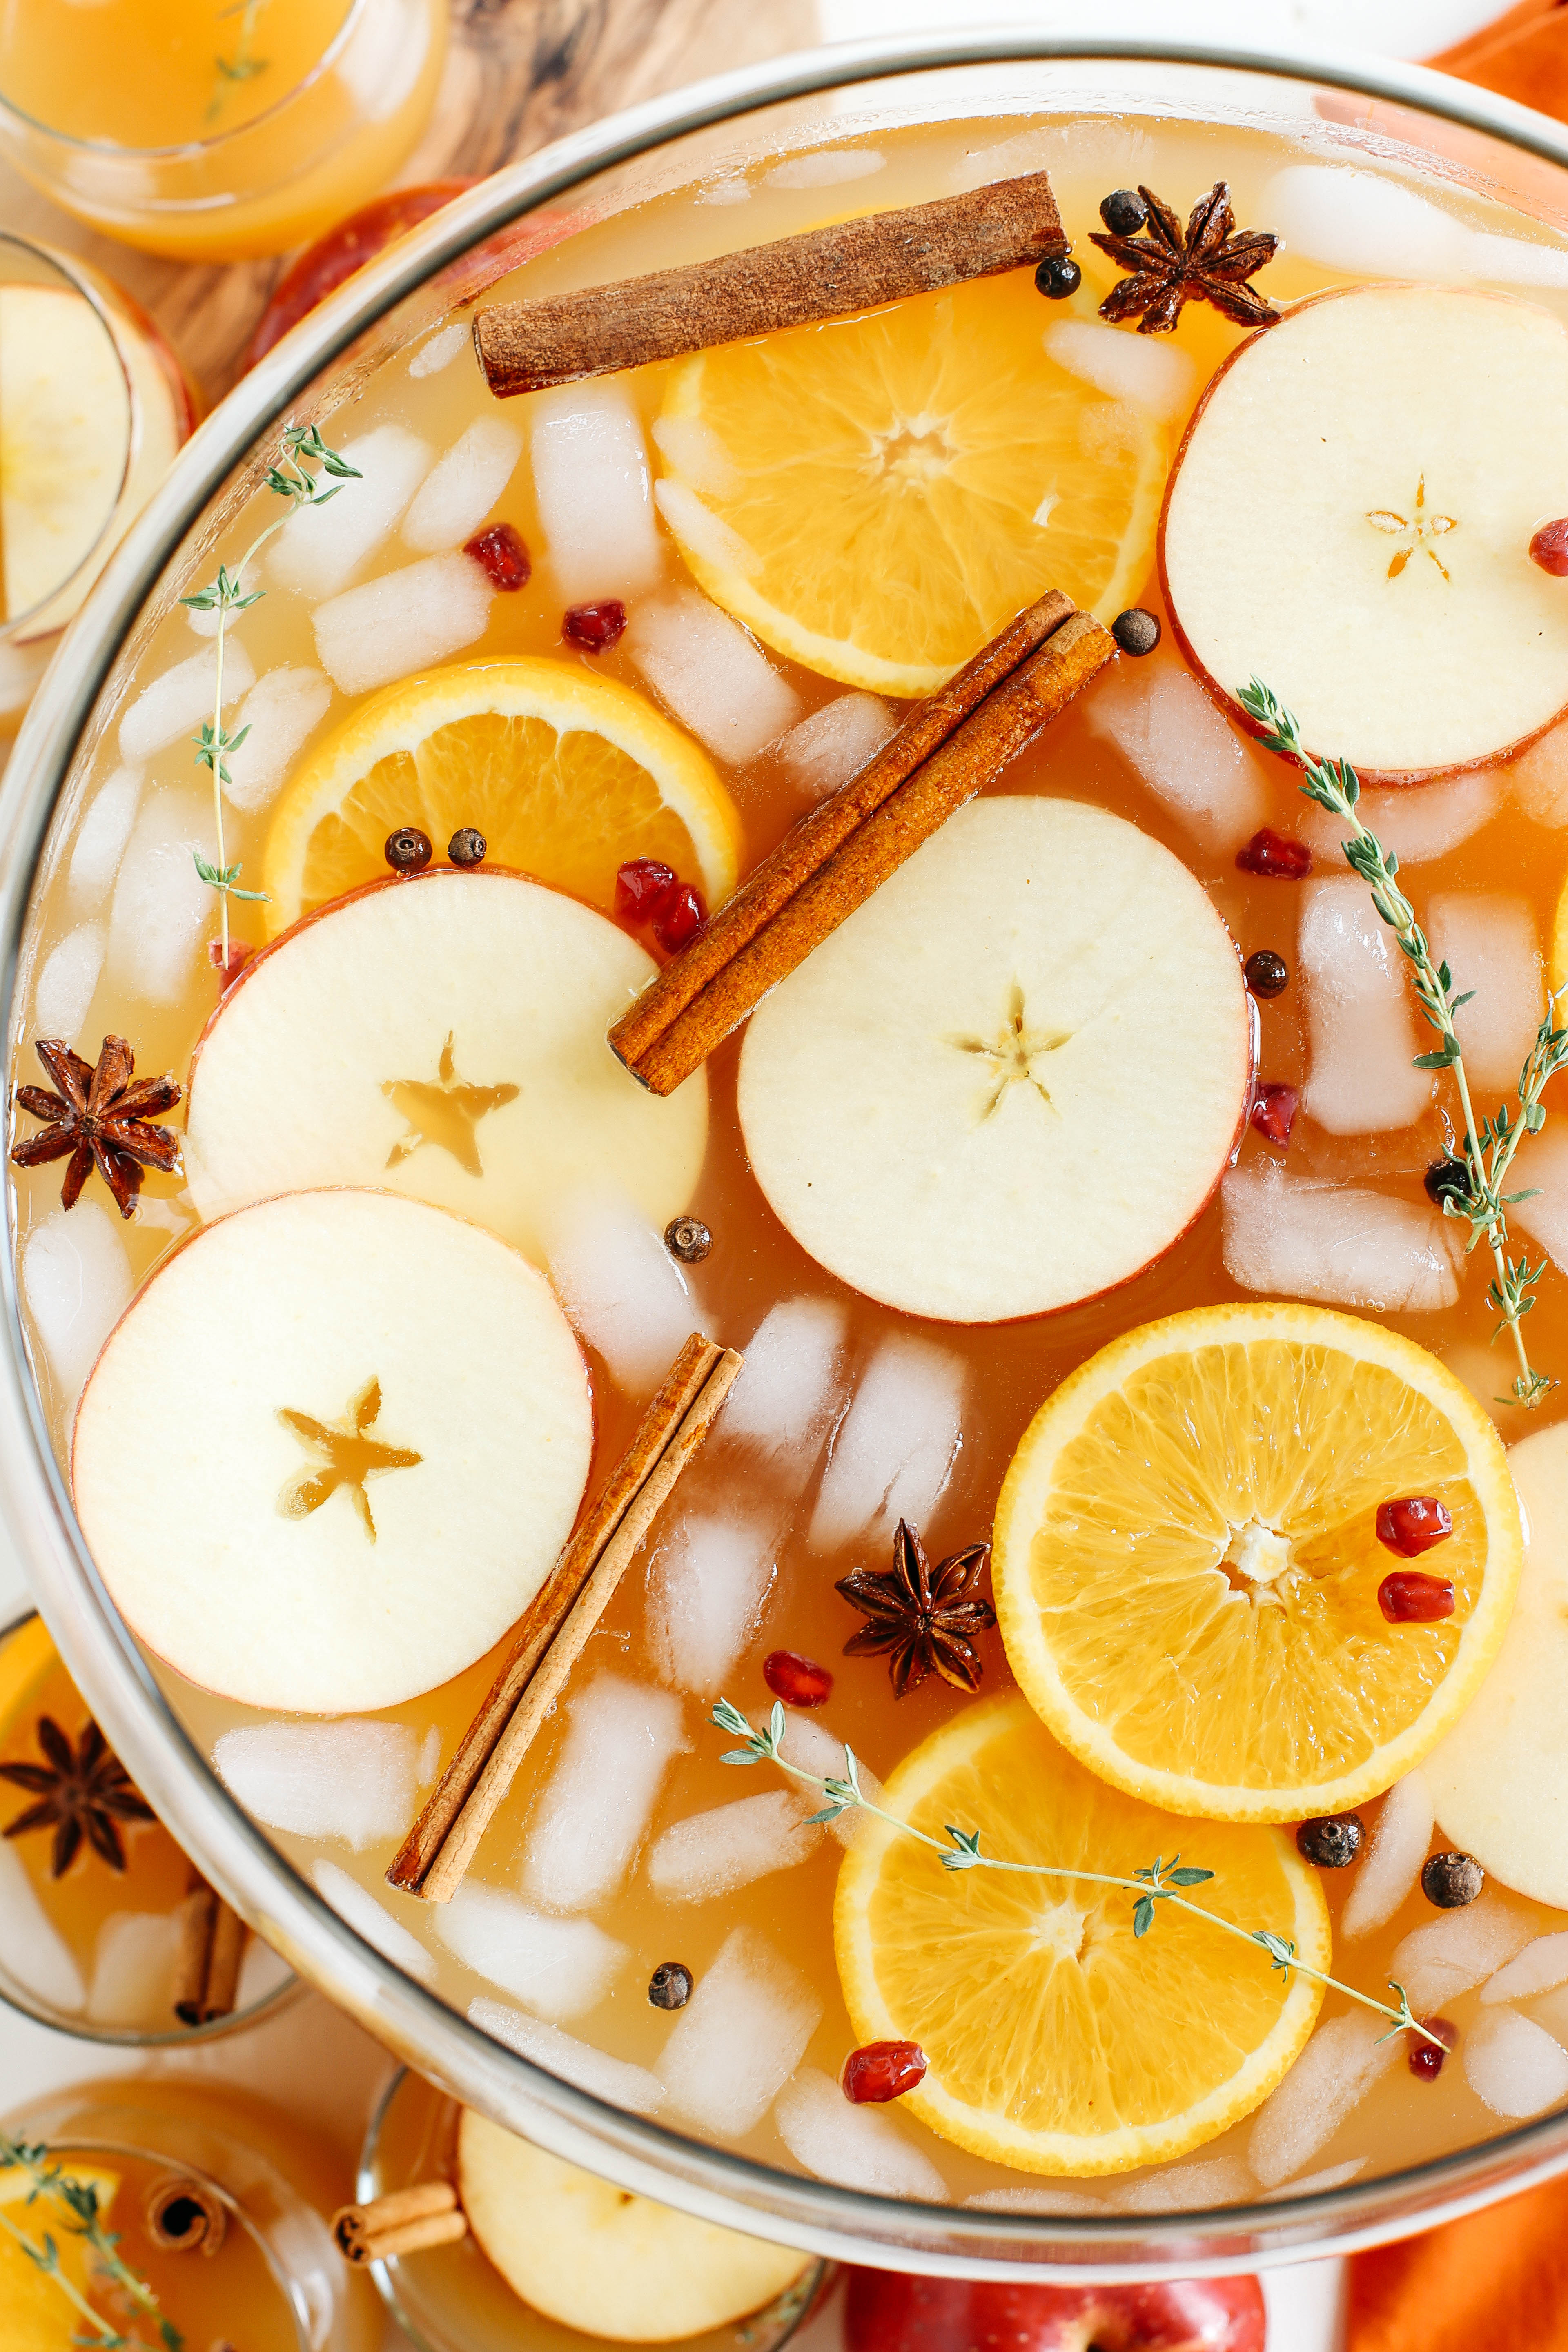 This Harvest Apple Cider Punch makes the perfect addition to any holiday party or gathering with a delicious combination of your favorite fall flavors all marinated together in one festive cocktail!